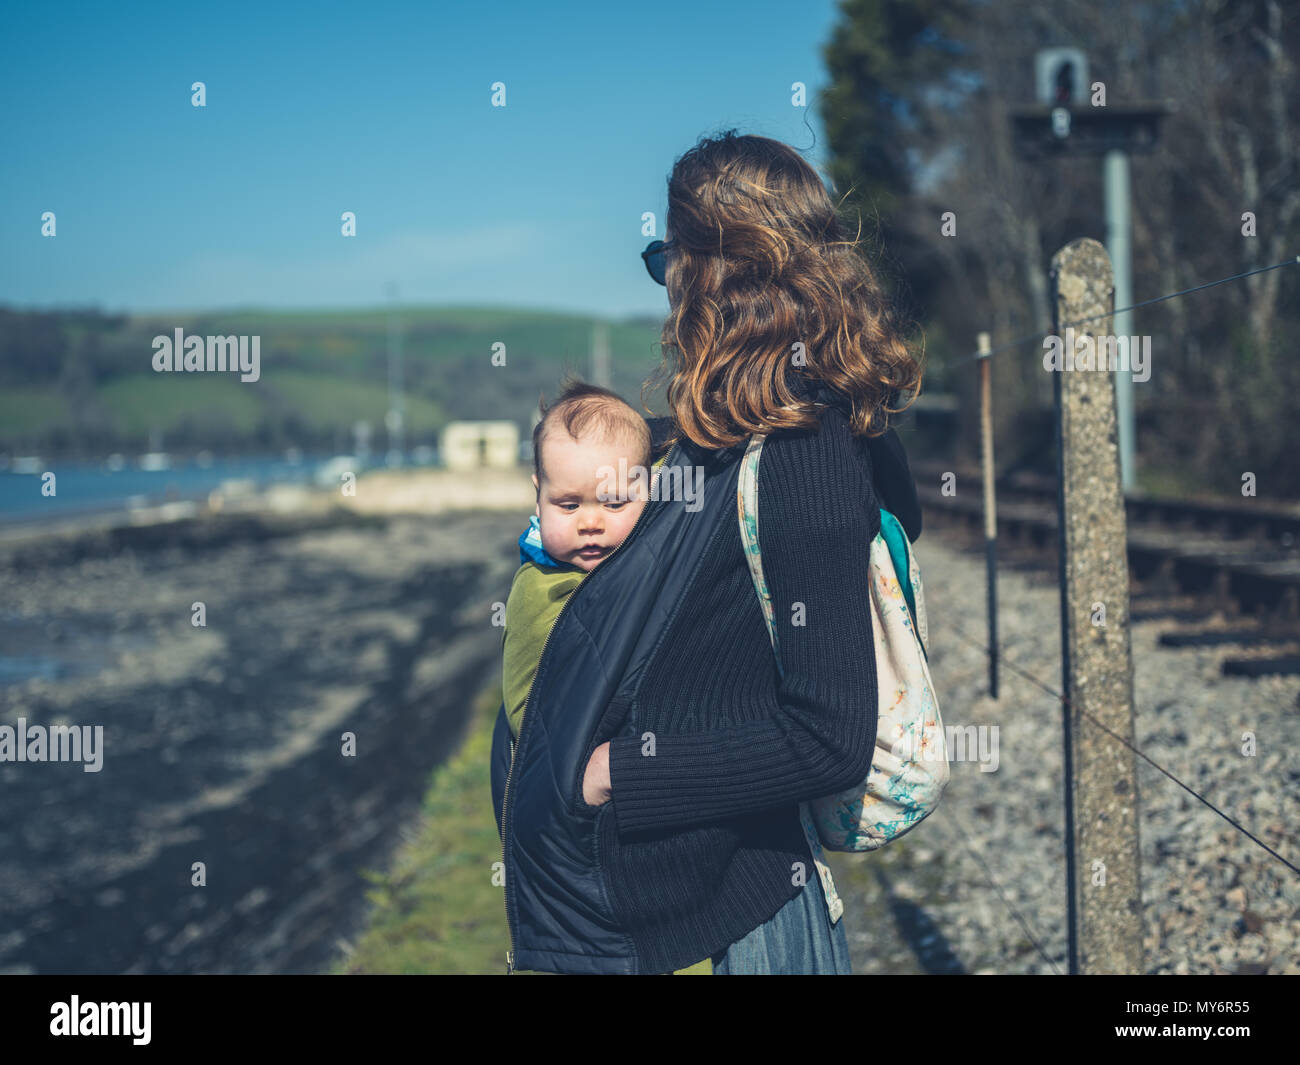 A young mother is carrying her baby in a sling outdoors - Stock Image